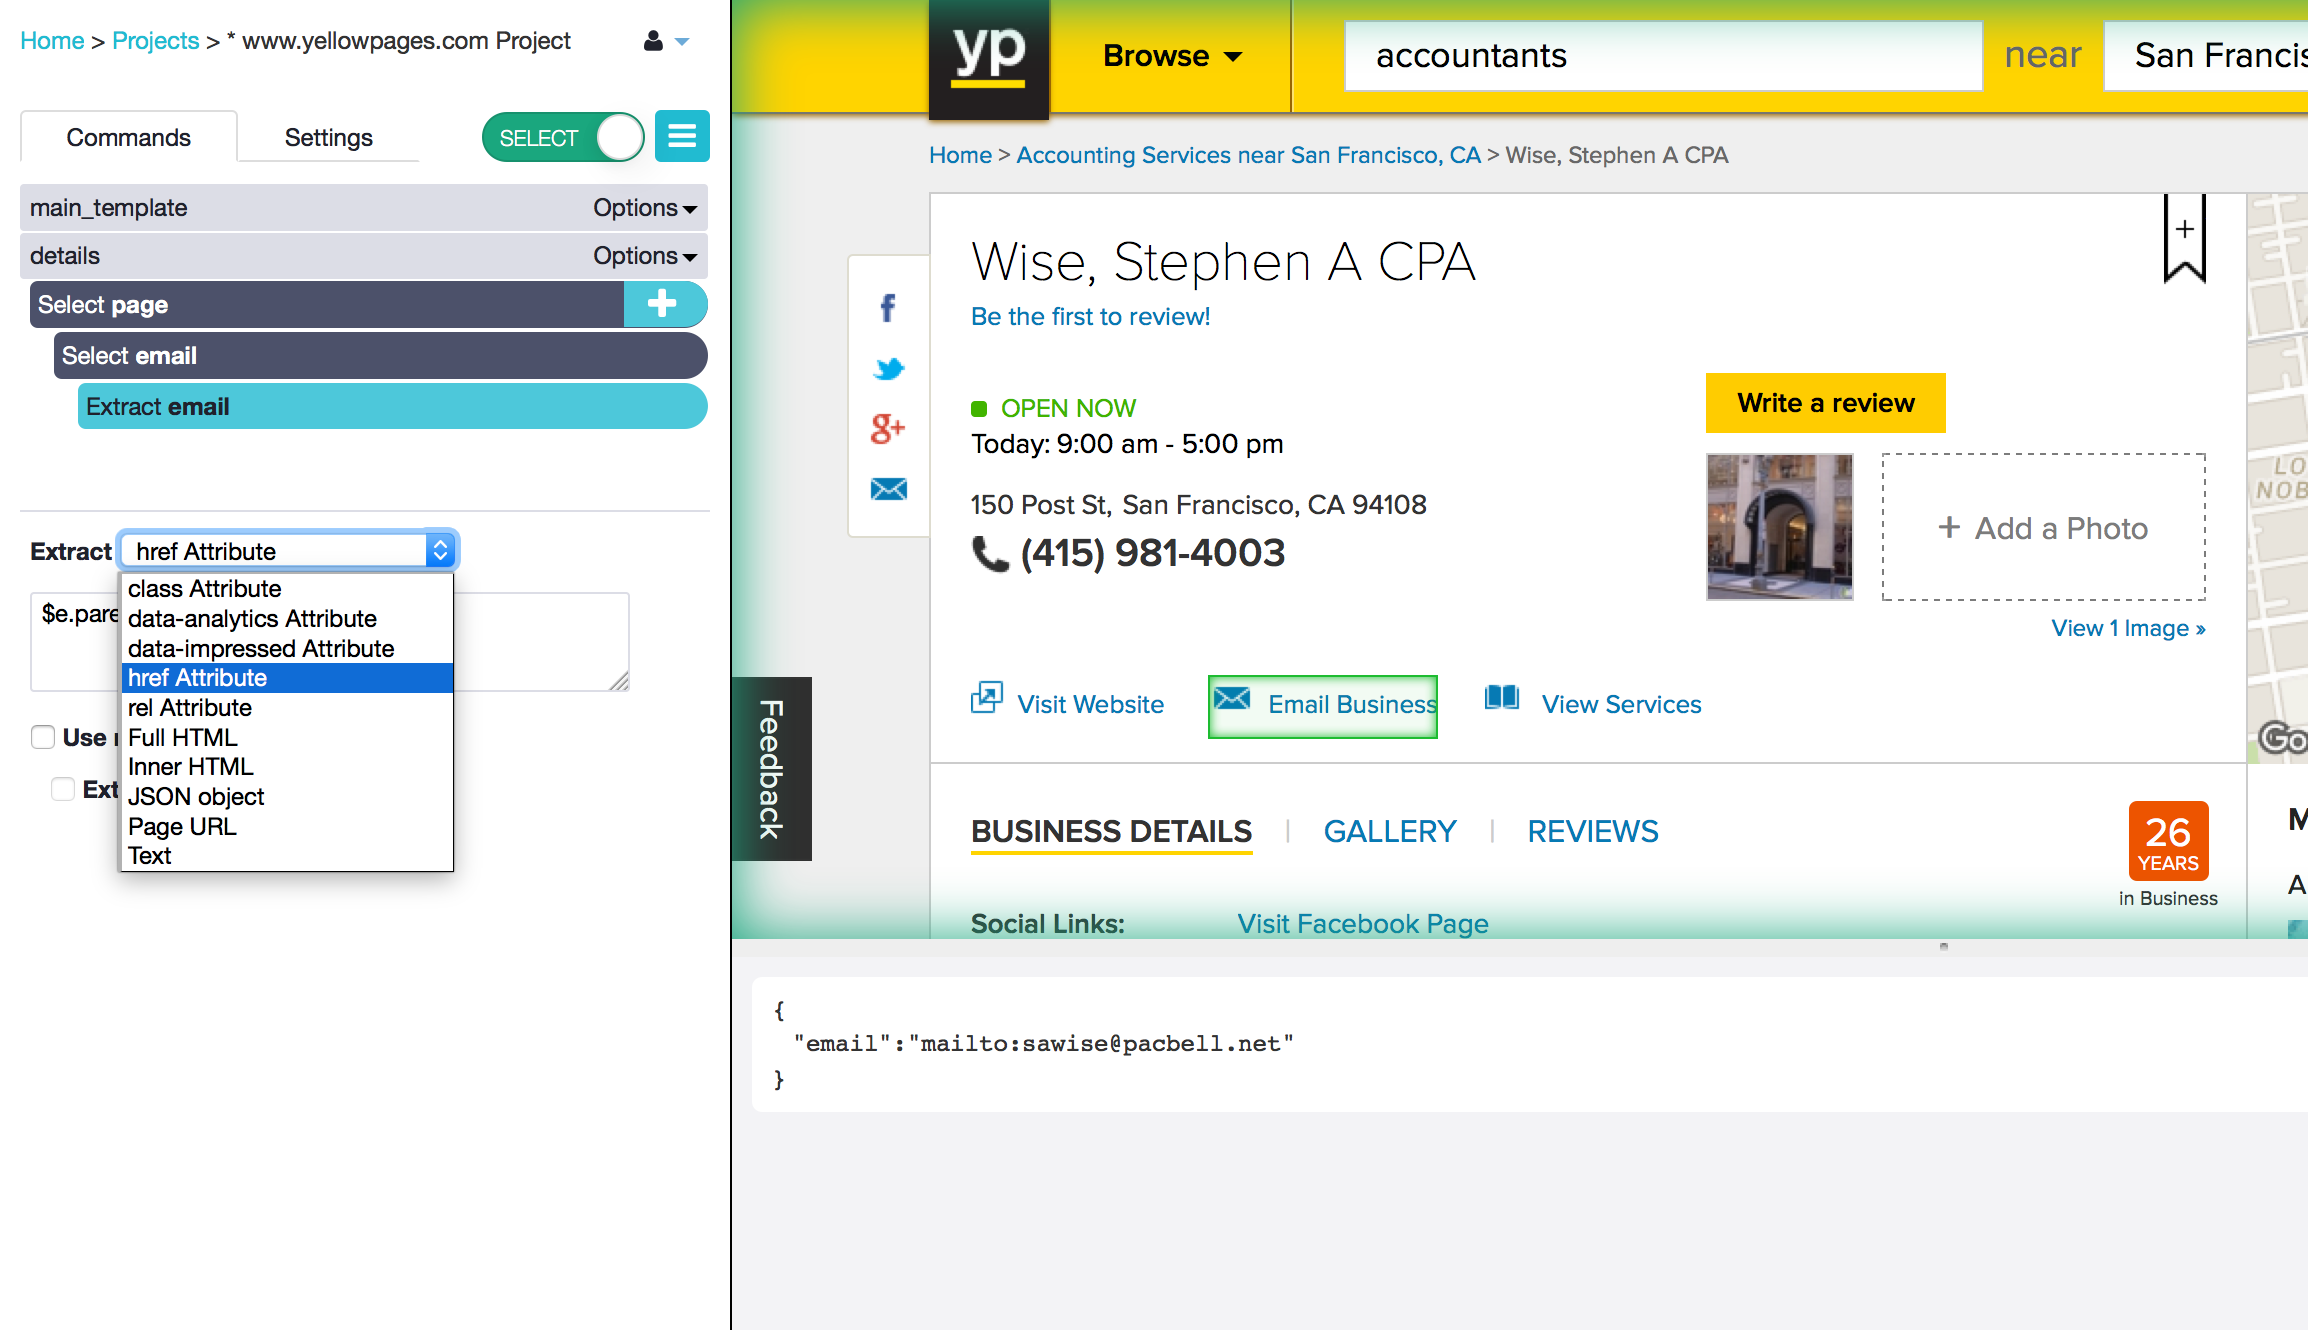 navigate to the profile pages of each business on yellowpages